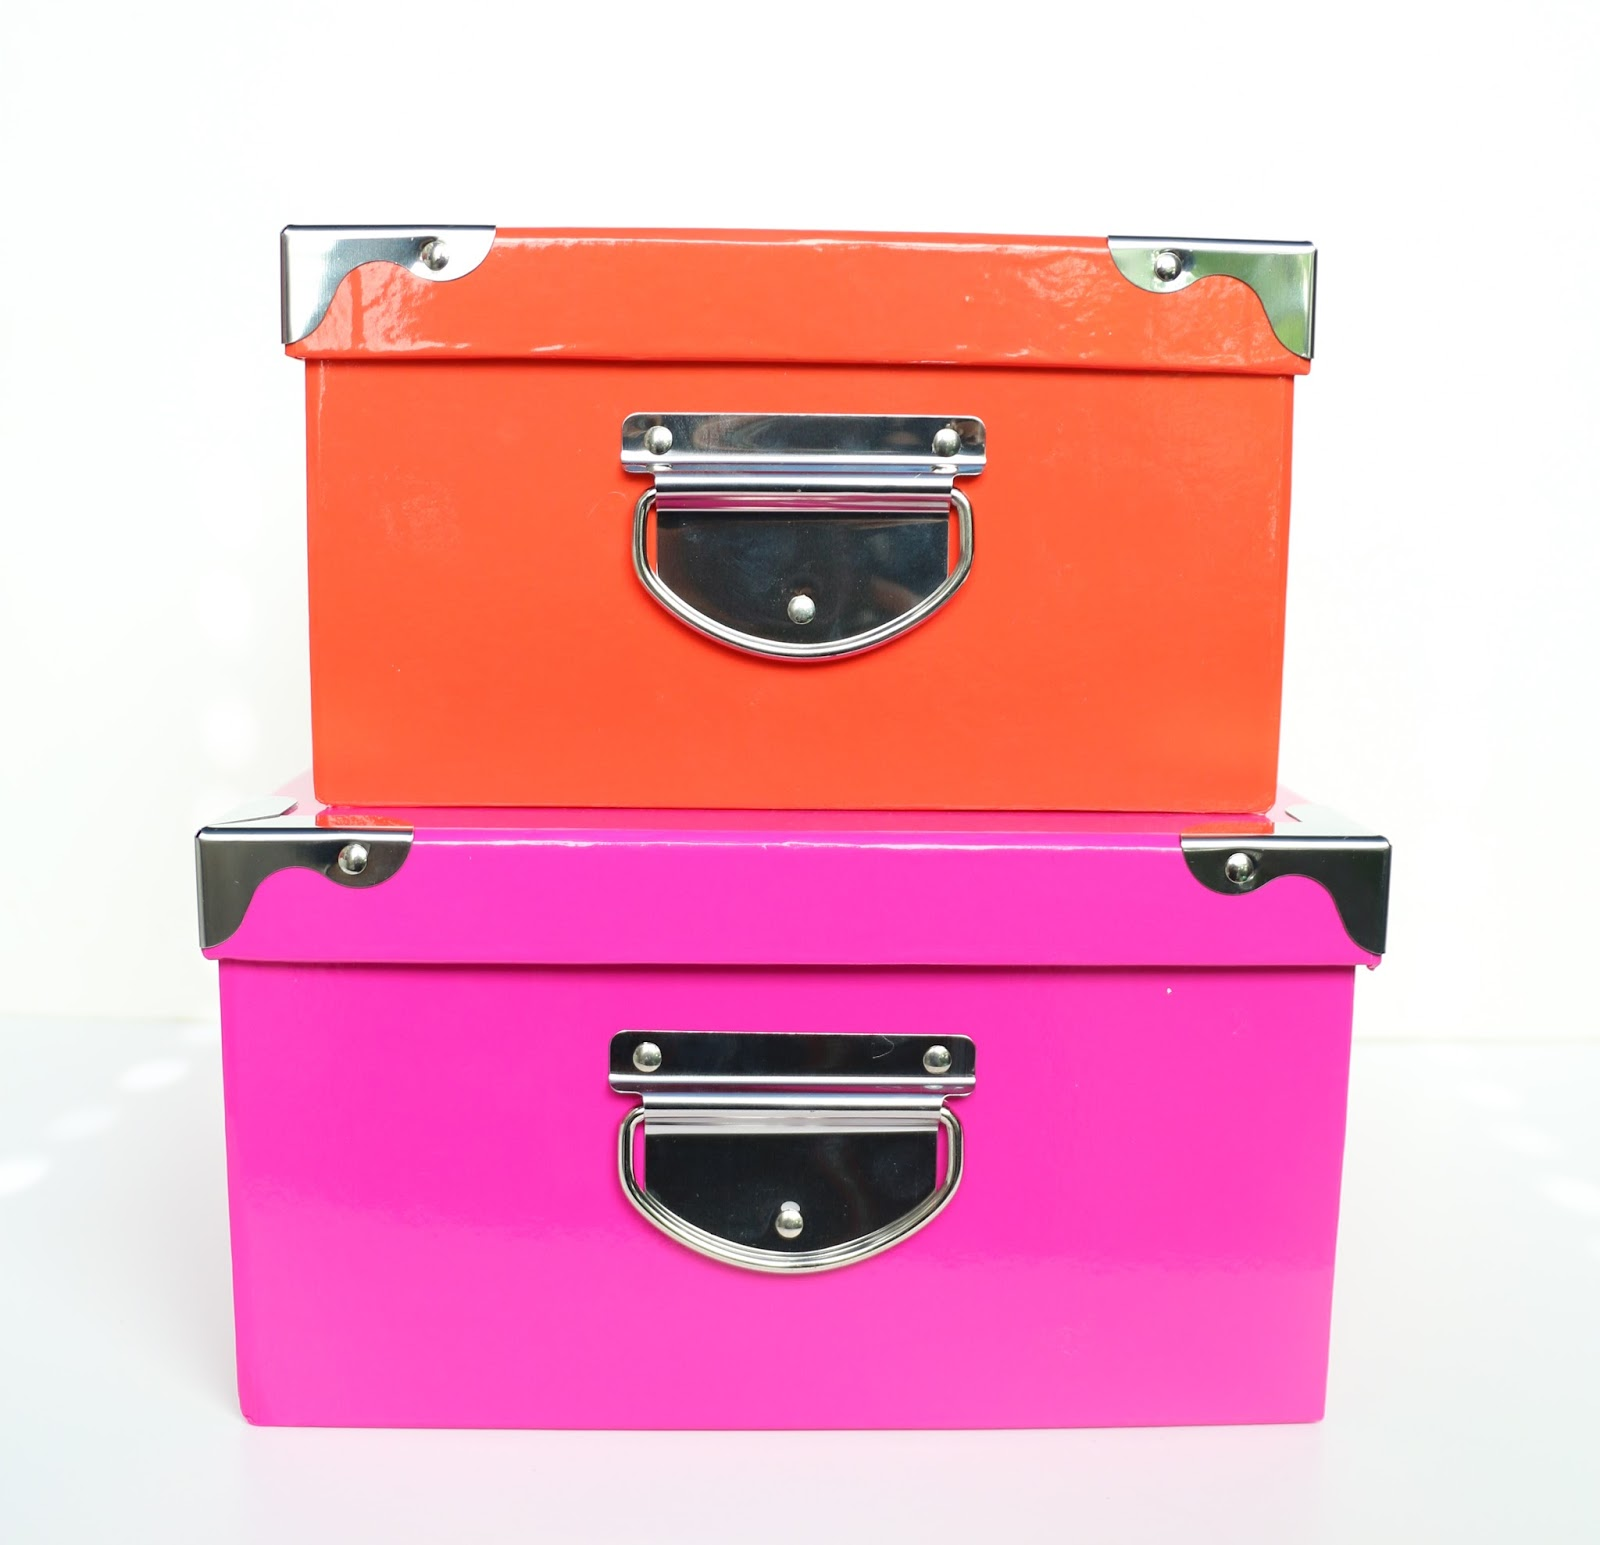 Find the perfect organizational solution when you check out our storage boxes, bins, and containers. Organize craft rooms, supply closets, classrooms, and anywhere you need to declutter with ease. Plus, our plastic storage containers are only $1 each so you can transform your spaces for less.